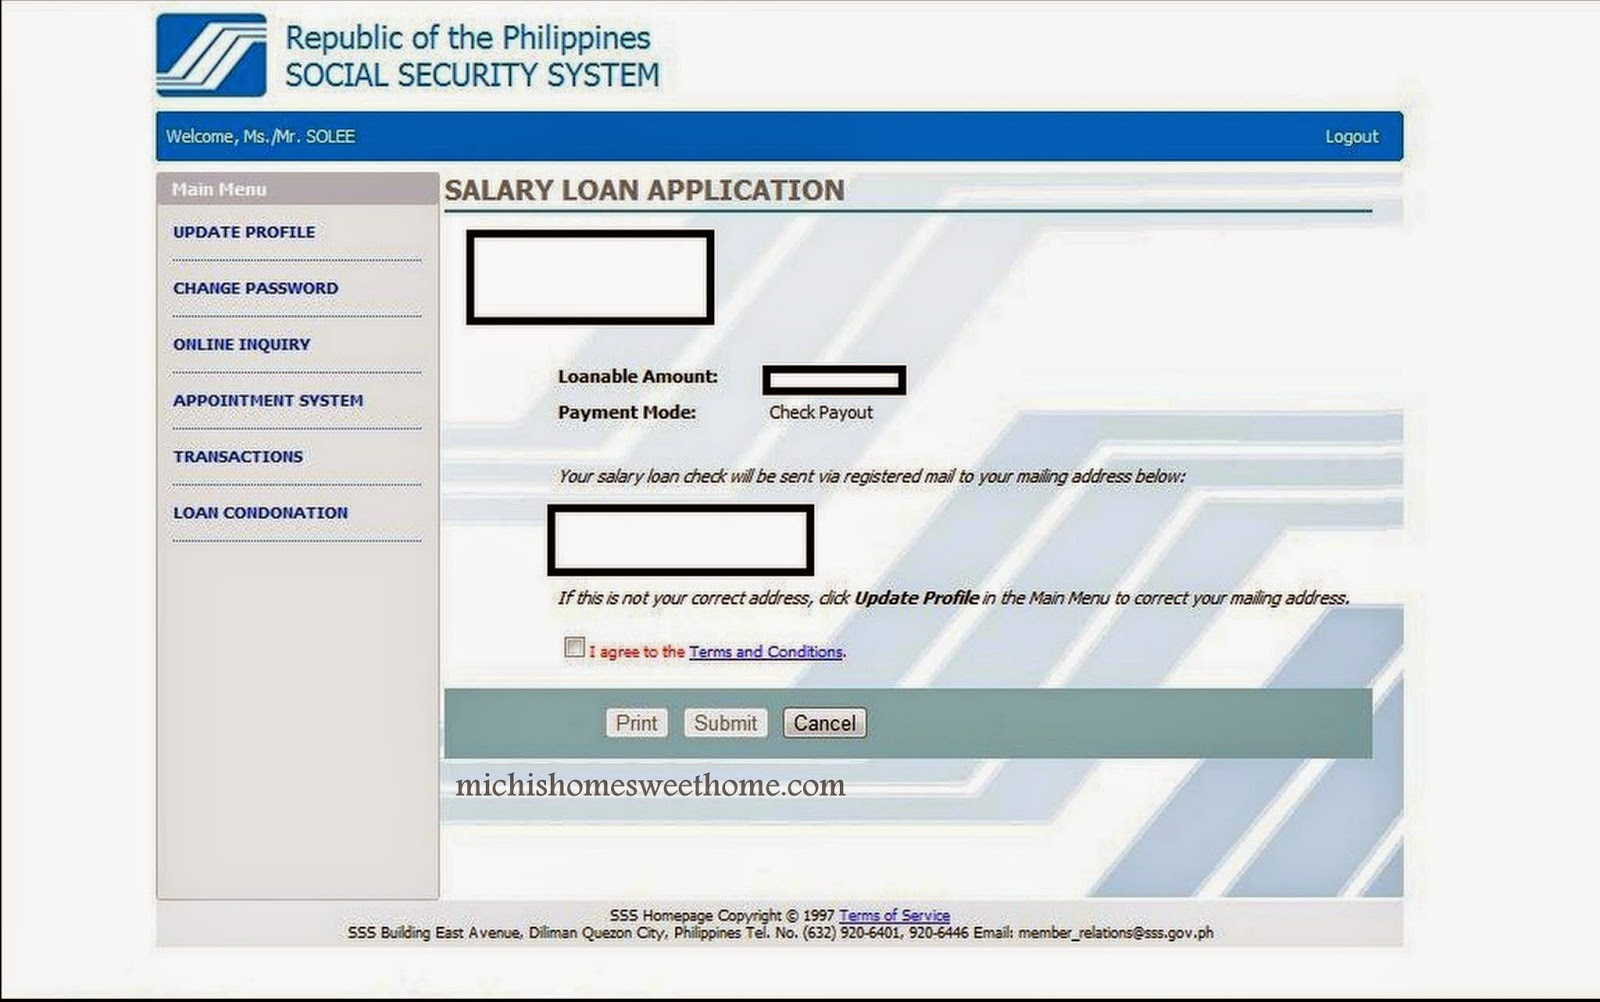 Michi Photostory: How to Apply for SSS Salary Loan via Online